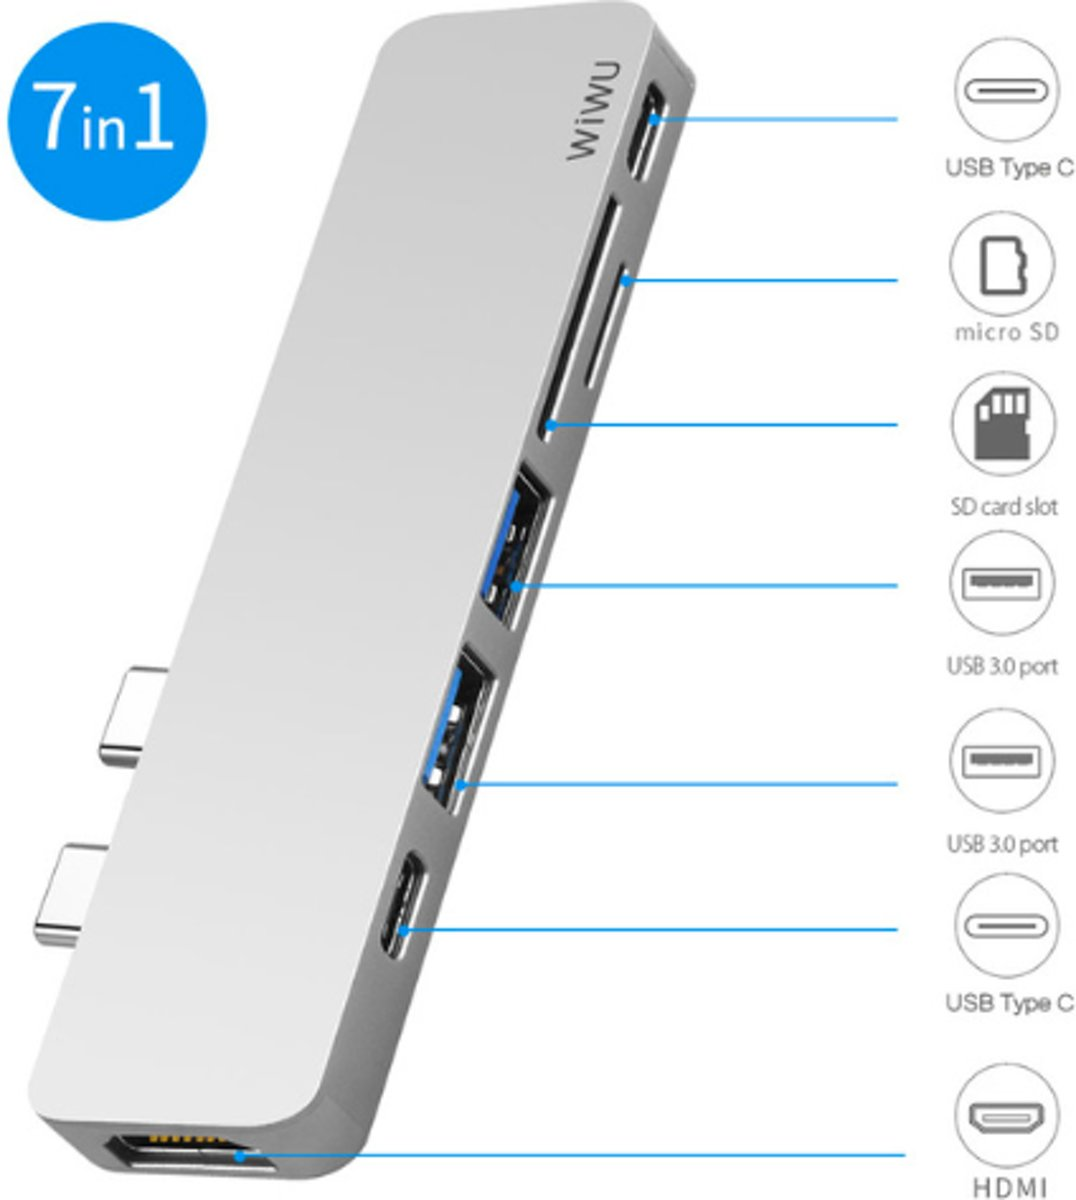 T8 USB Hub 7 in 1 Type-C Hub 3.0 Dual Type-C voor Macbook Pro USB-C Adapter met HDMI 4K Video PD Kaart SD/TF 3.0 USB Poort - Zilver